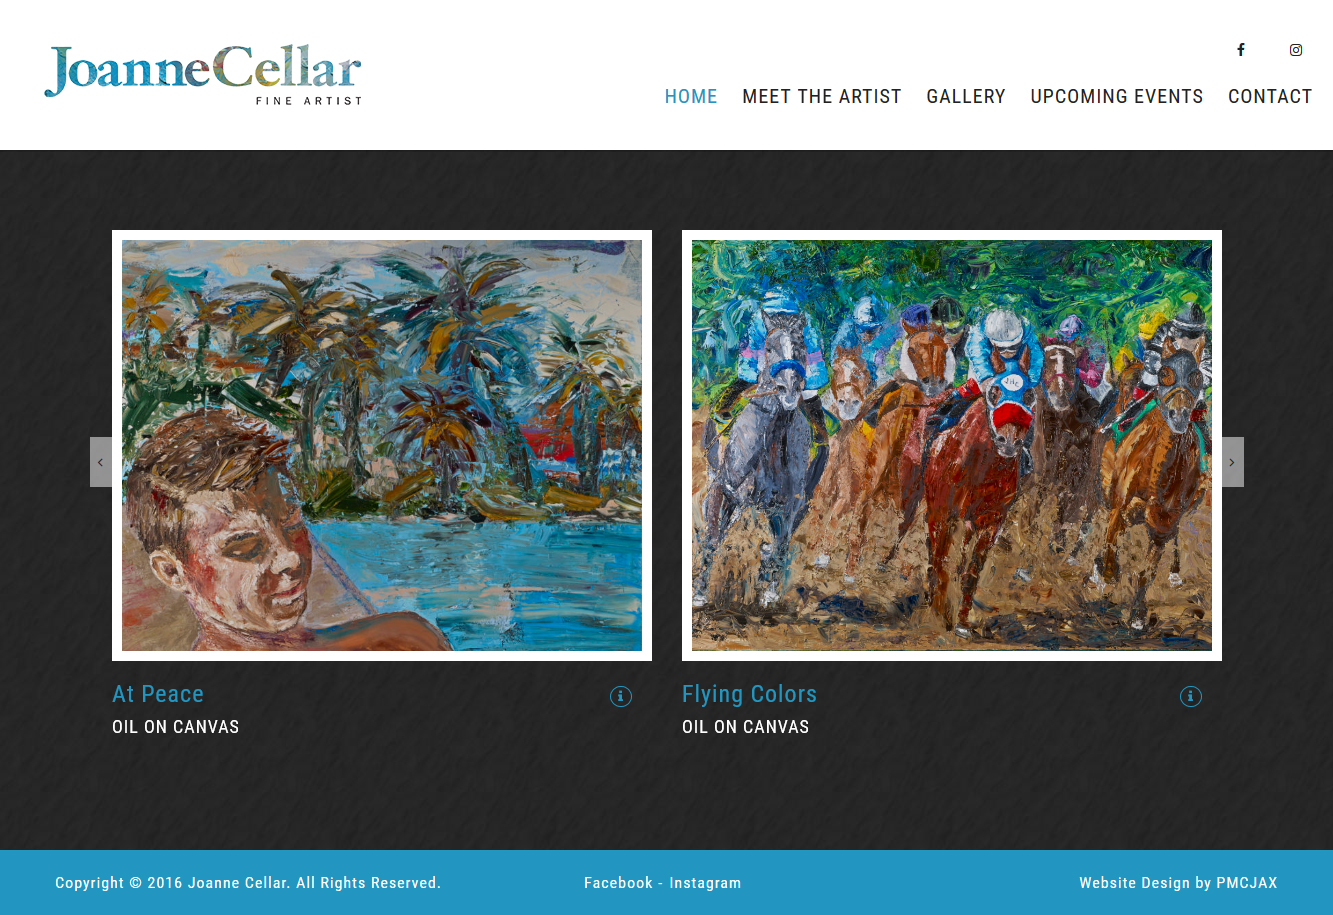 Artist Website Design Company Website Design Company For Artists